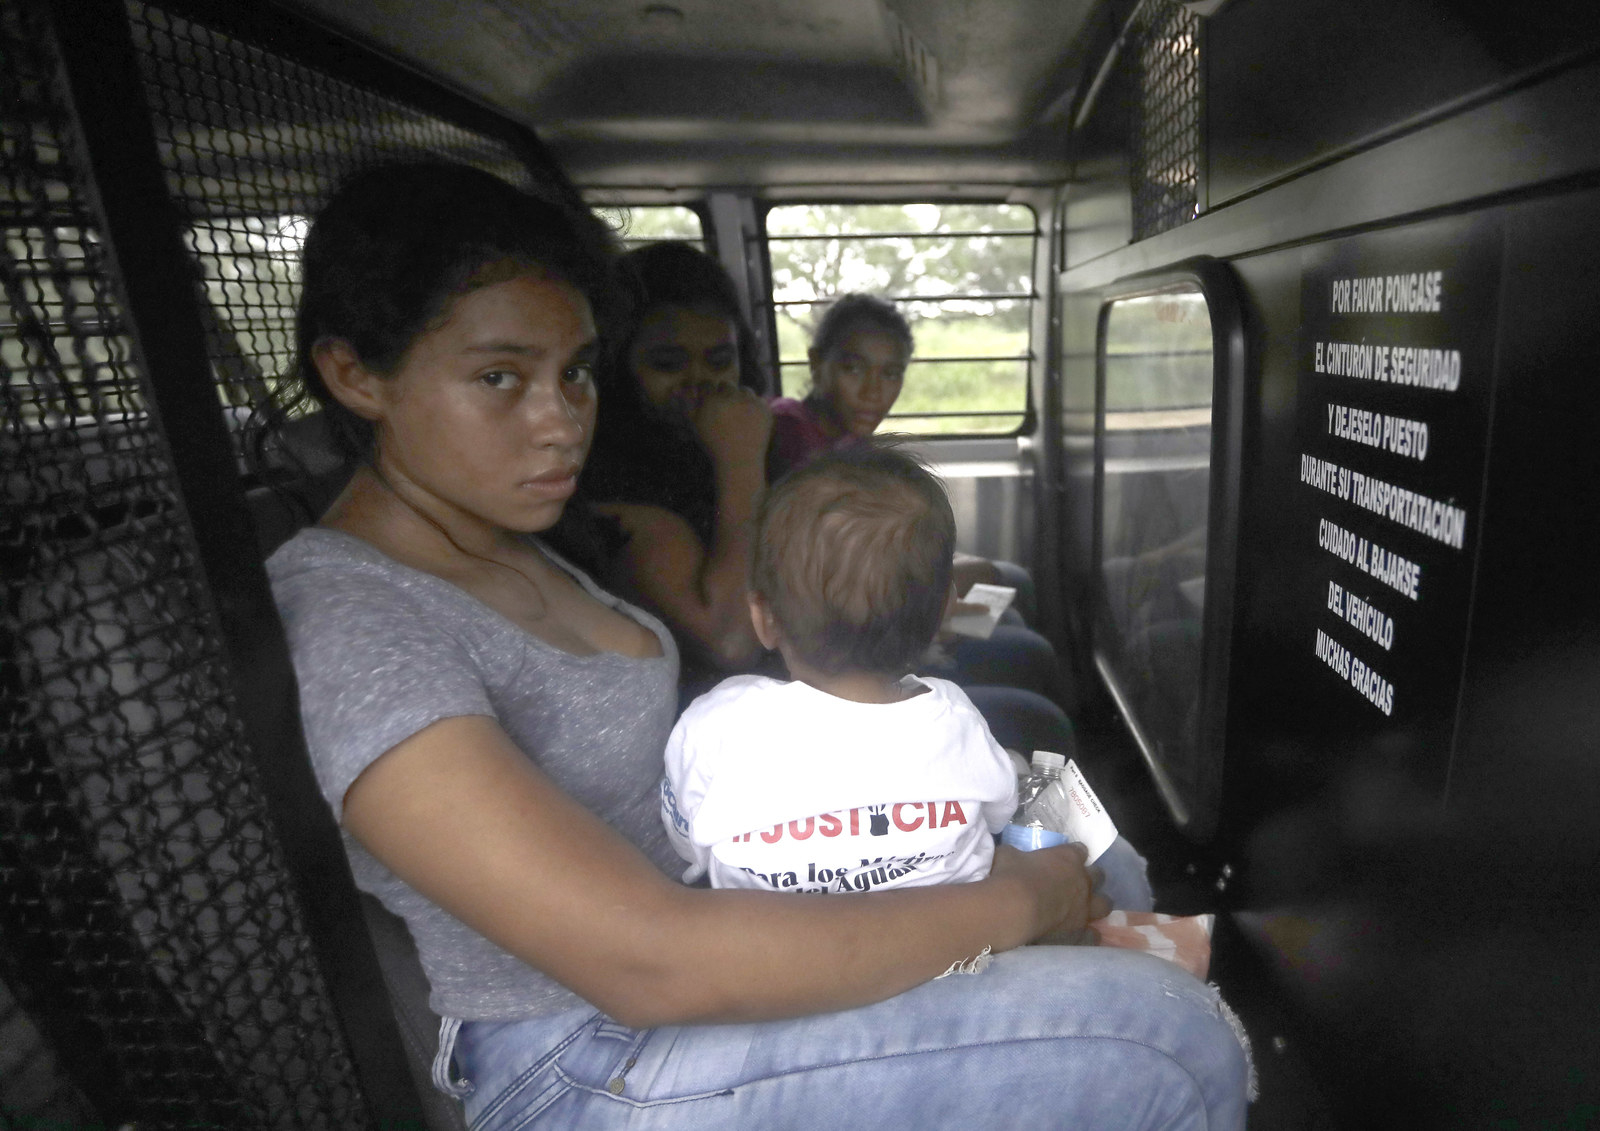 A mother migrating from Honduras holds her 1-year-old child in the back of a transport van after surrendering to Border Patrol agents on June 25, 2018.